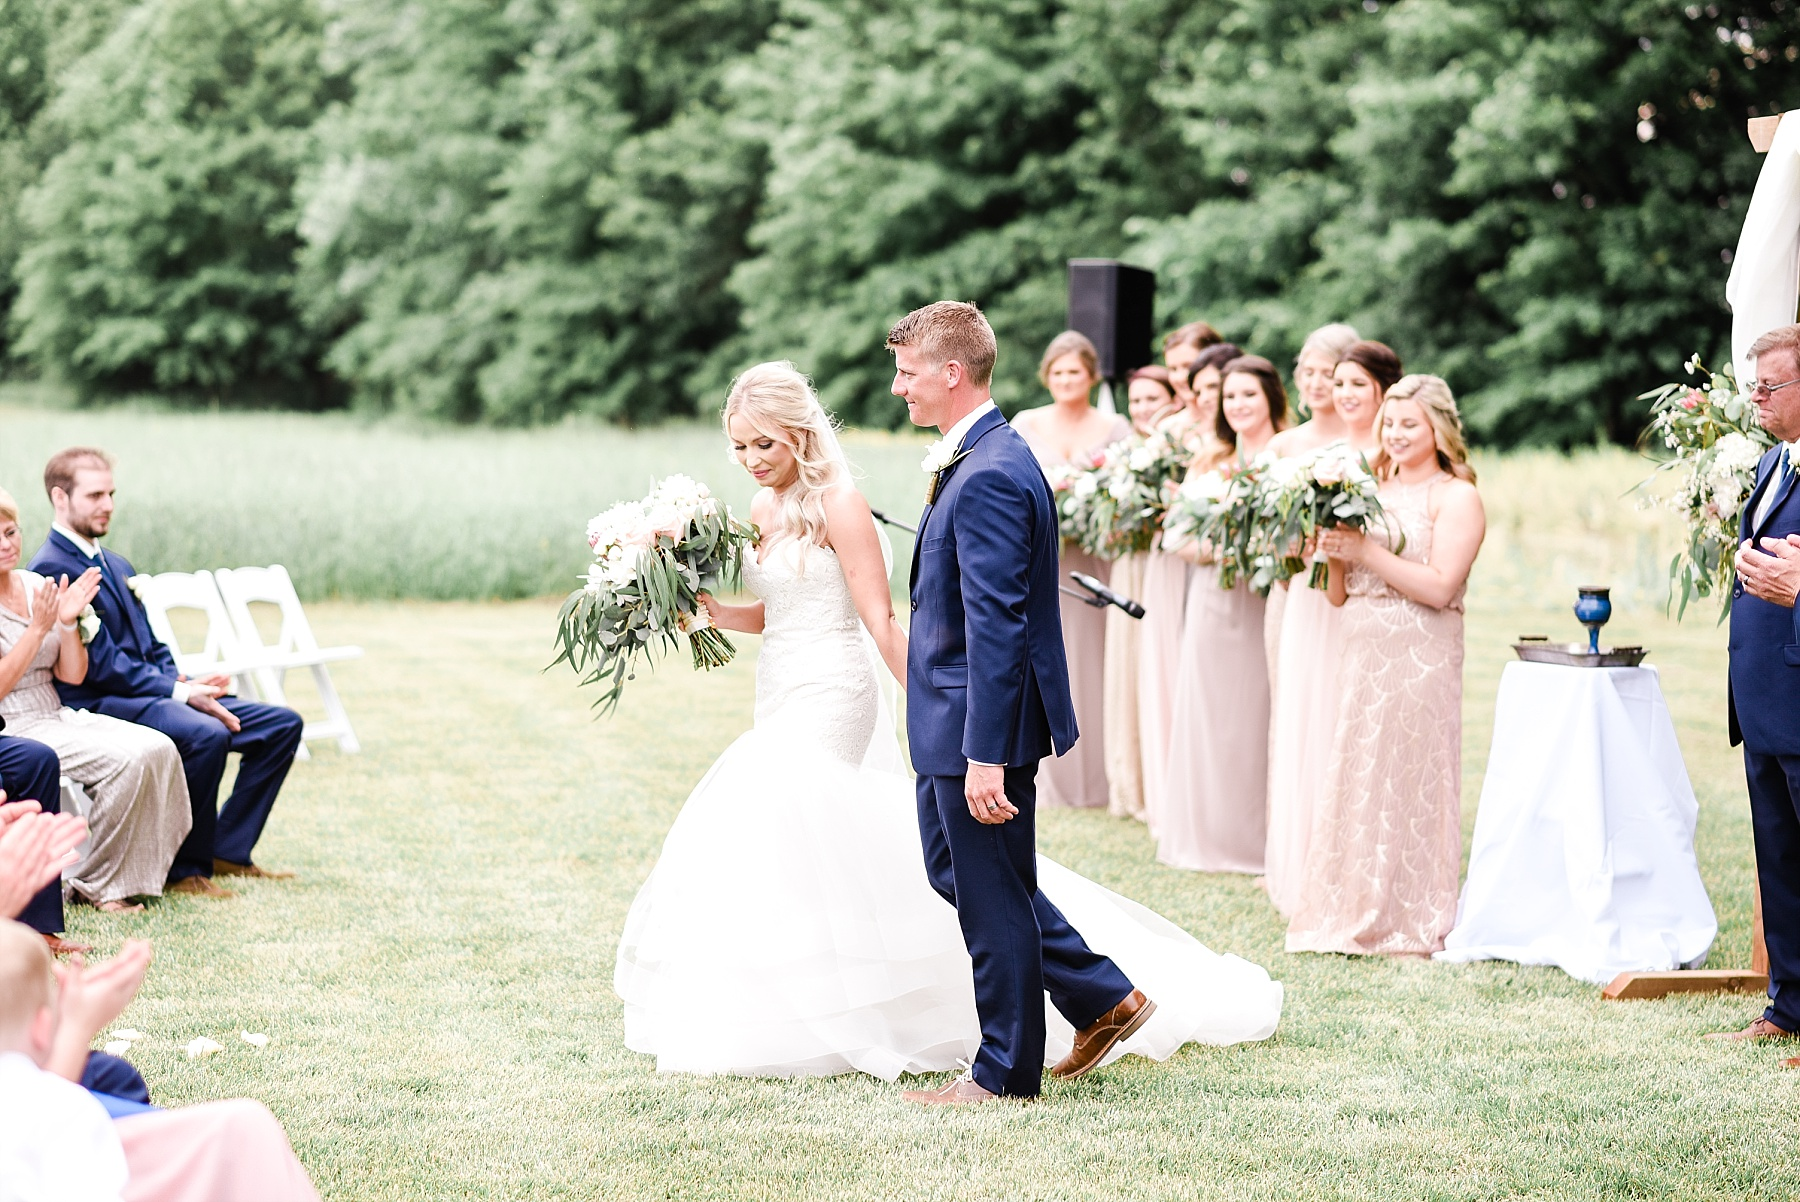 Stunning Heartfelt, Elegant, Fine Art, Chic, Outdoor Spring Wedding with Blush, Cream, Greenery, Rose Gold, and Sequins at Emerson Fields Venue by Kelsi Kliethermes Photography_0053.jpg